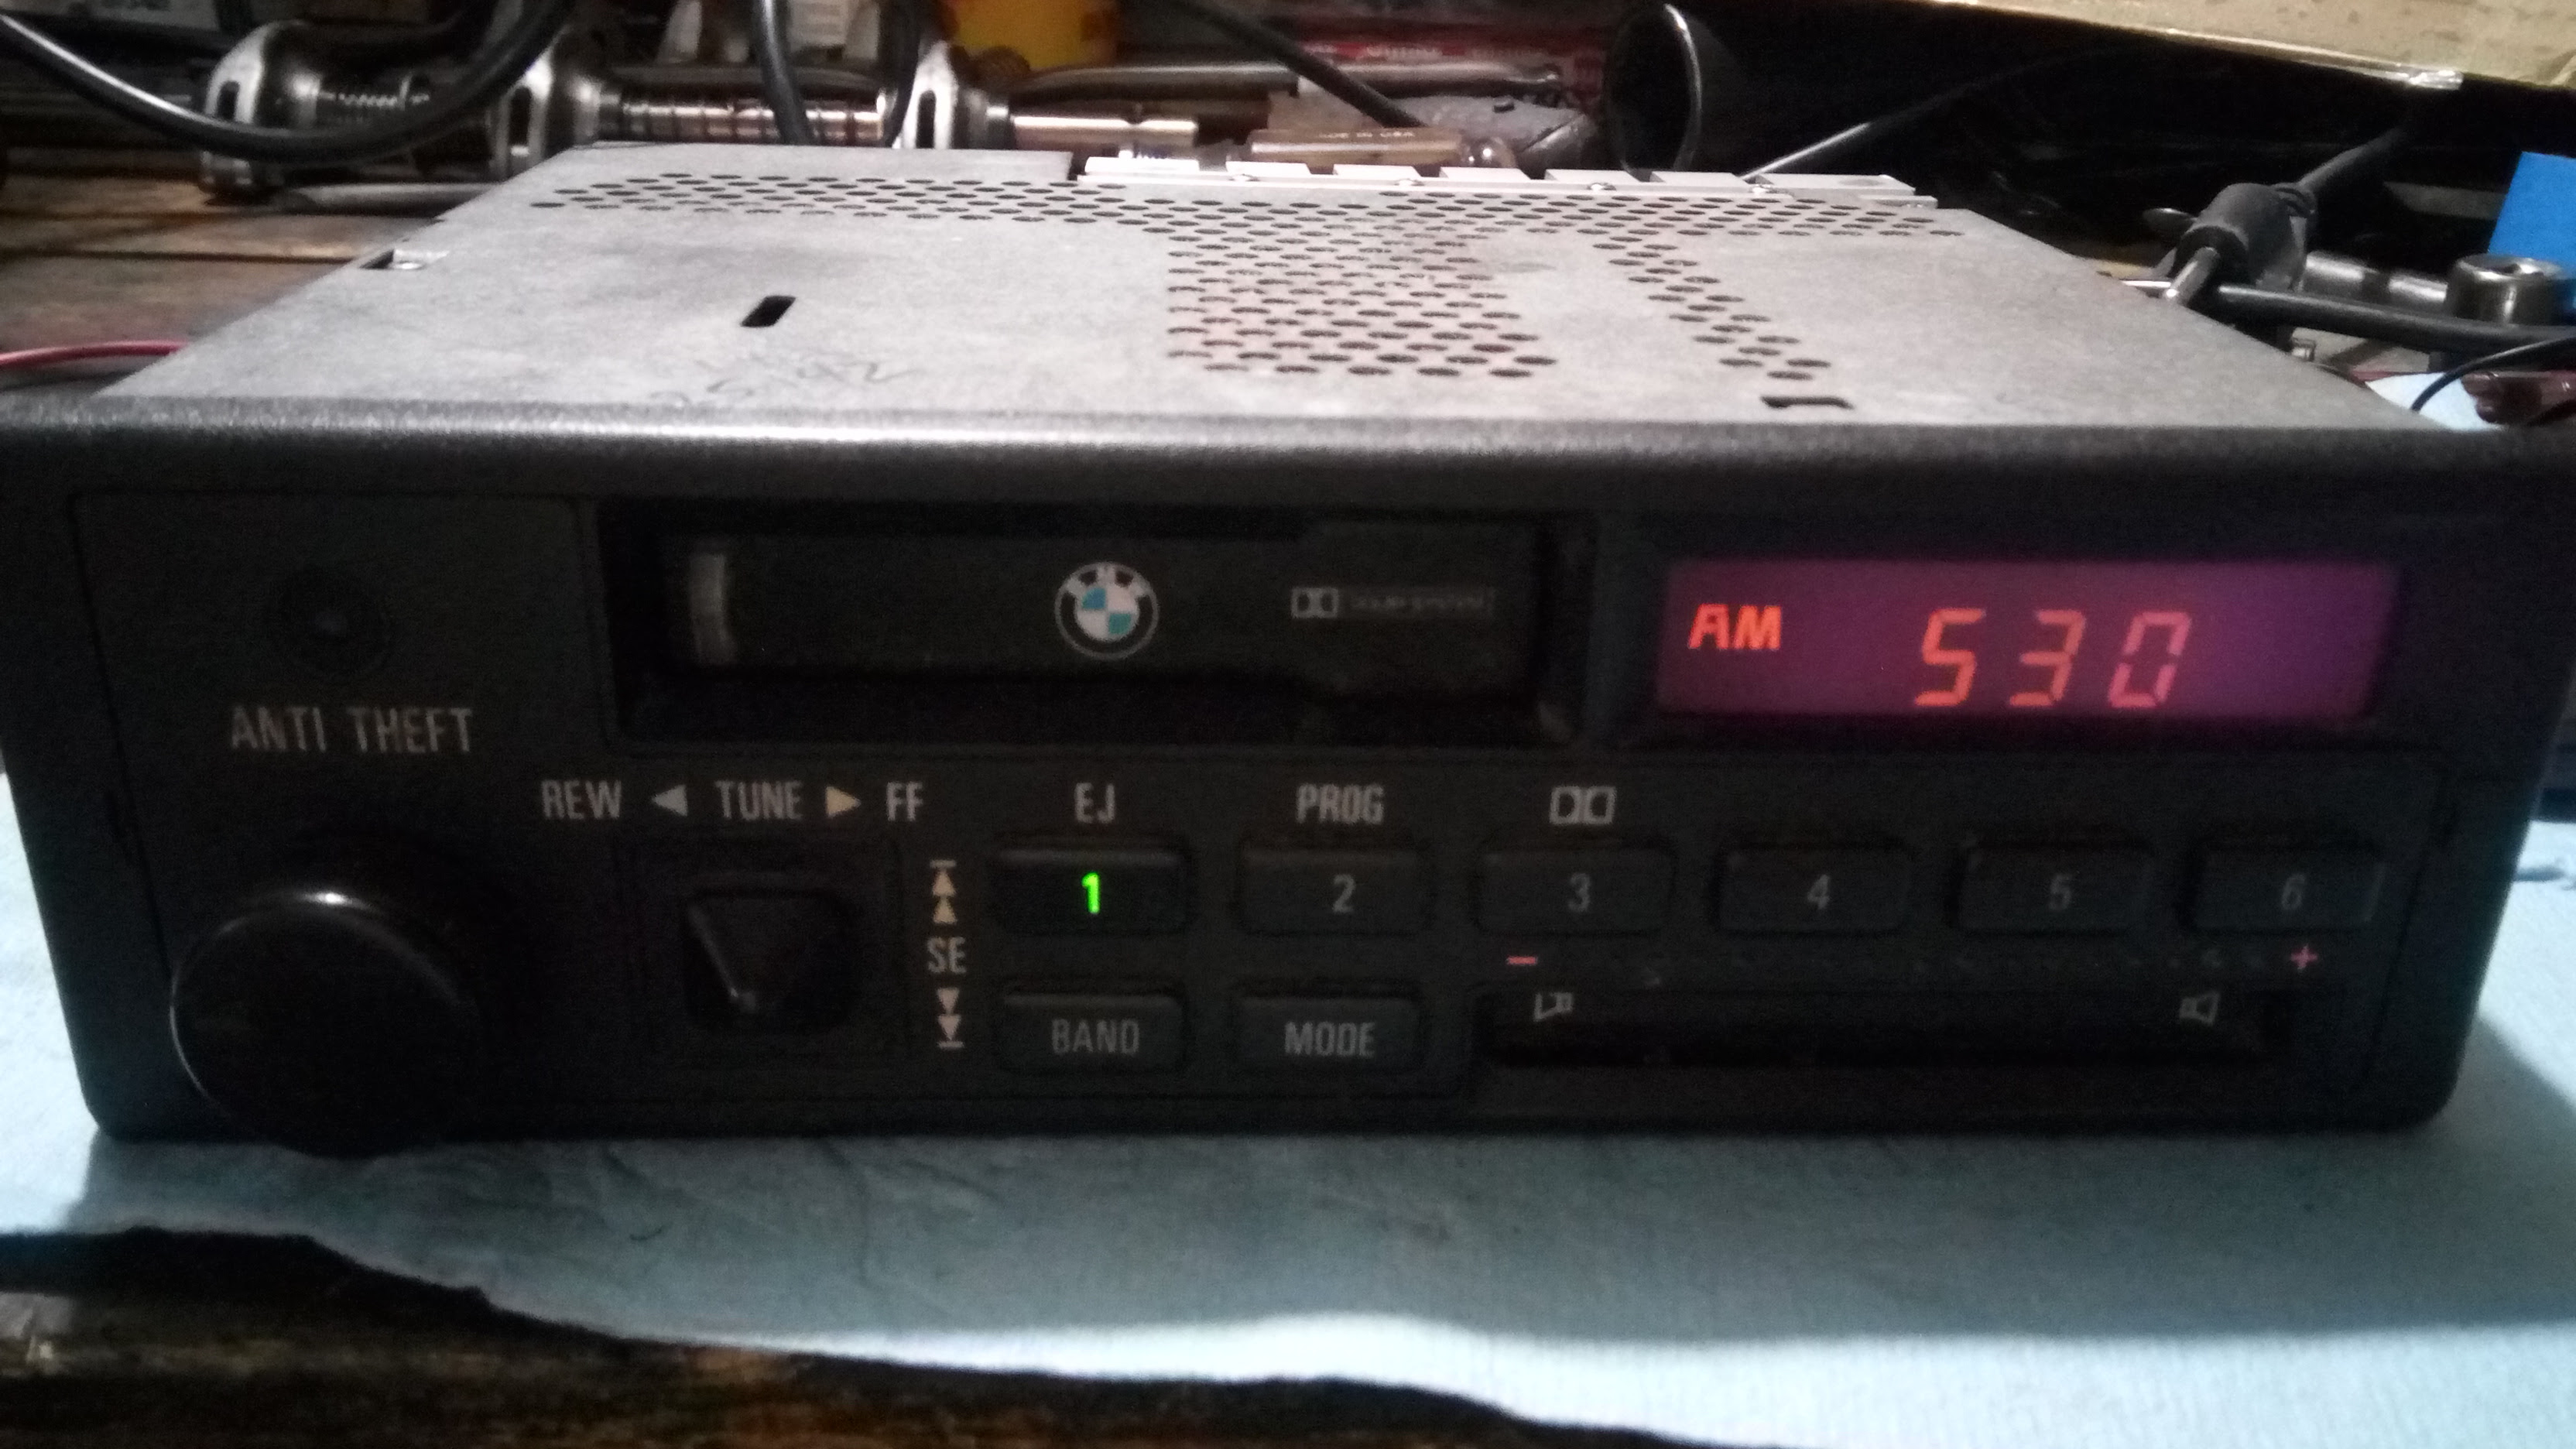 Oem Stereo Notes C33 C43 Cd43 Cd53 The Iconic Bmw